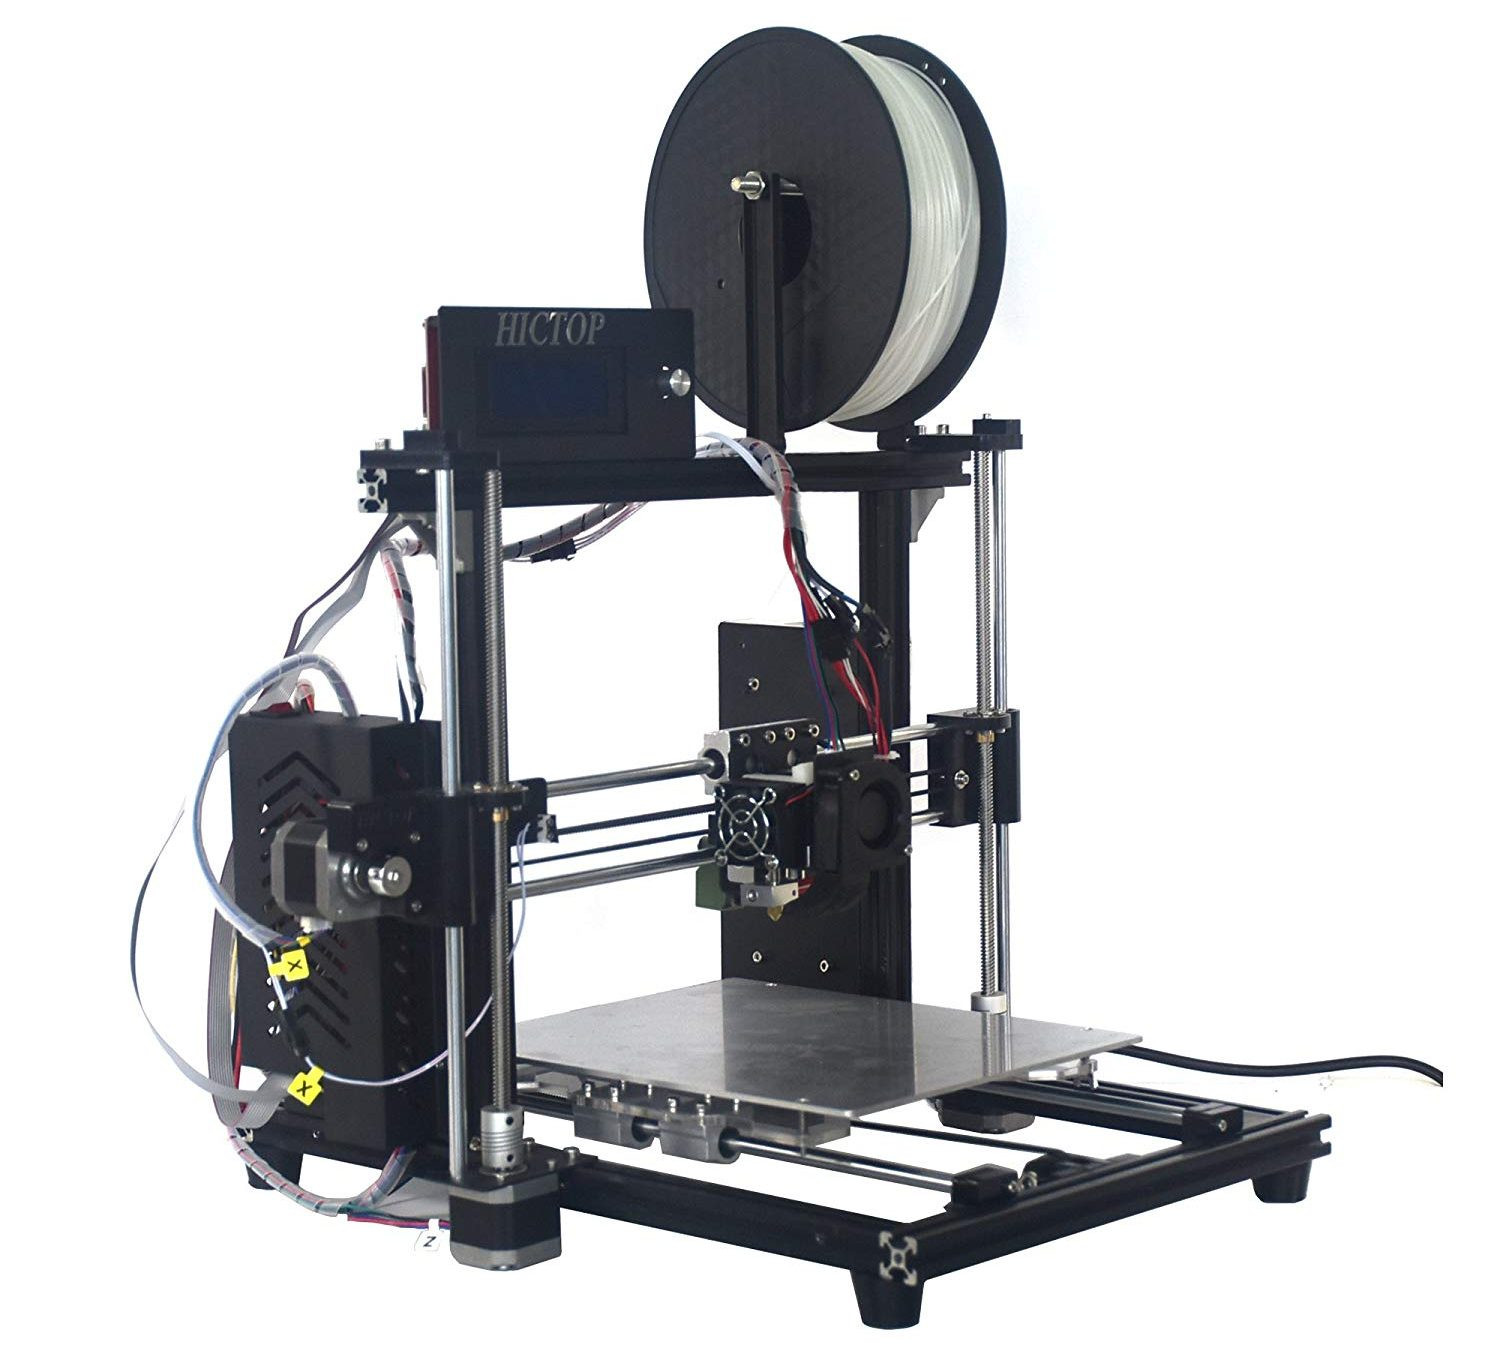 Best ideas about DIY 3D Printer Kit . Save or Pin Best DIY 3D Printer Kits on Amazon [2018] 3D Print Manual Now.